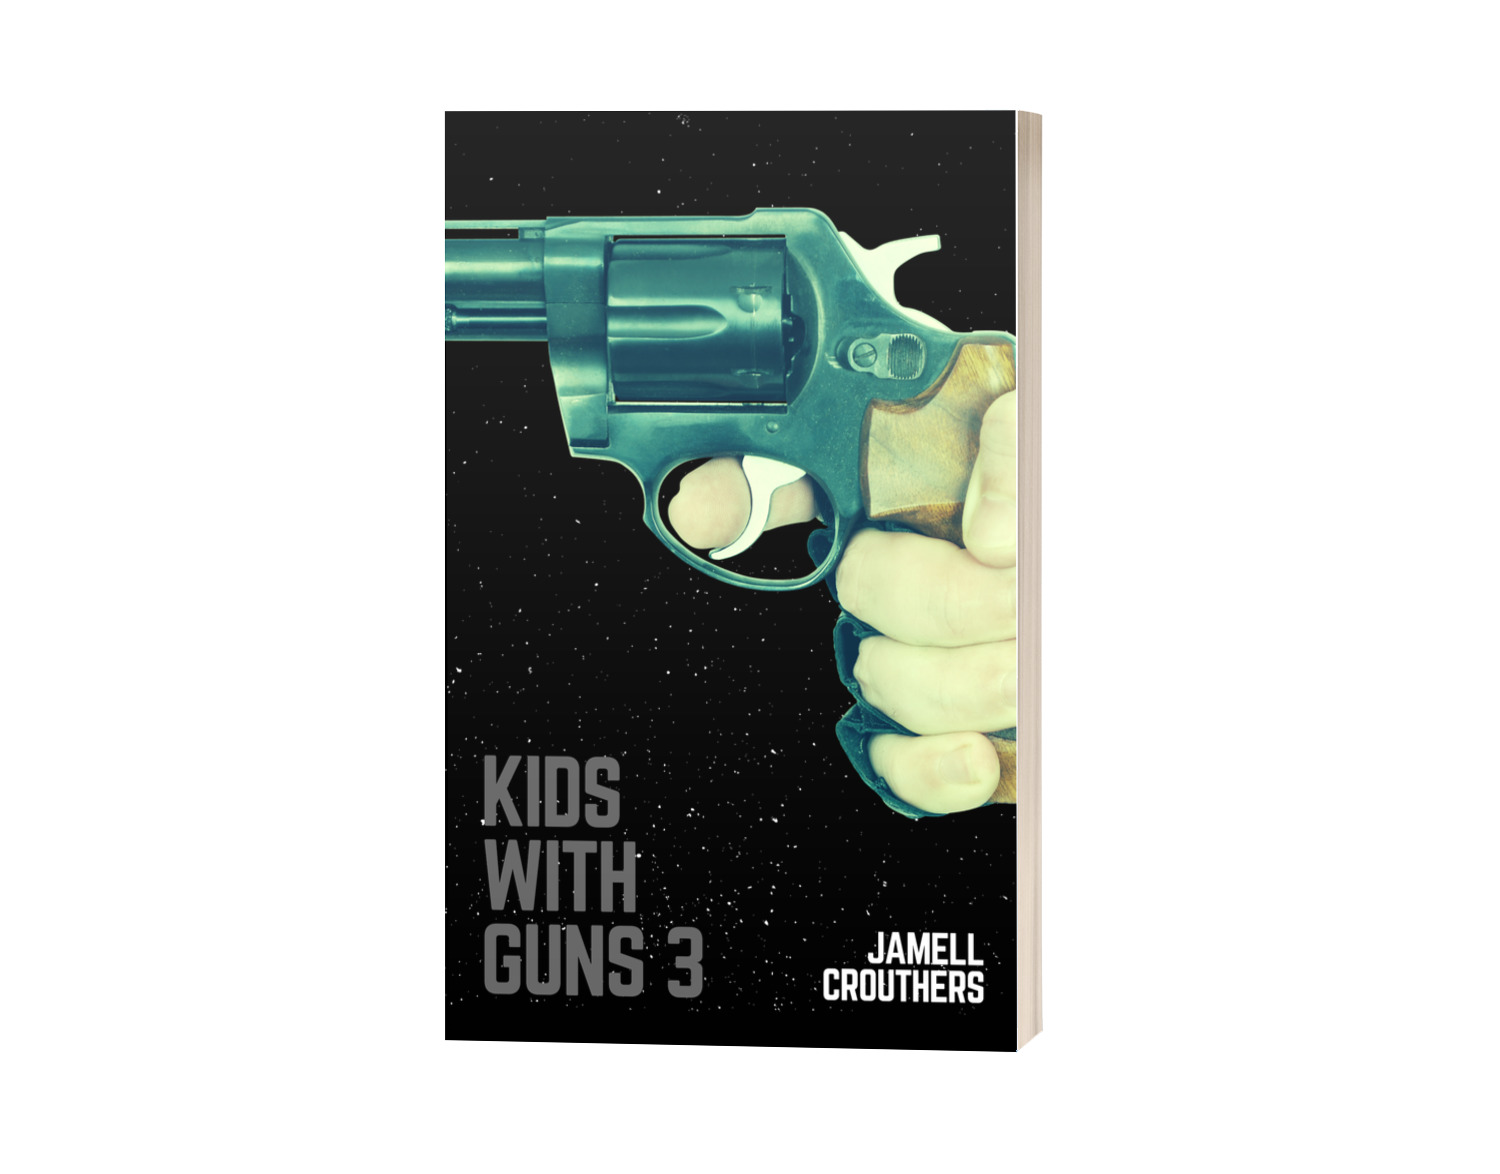 Kids With Guns Part 3 is the trial of Matthew and Max and new characters are introduced into the series and you hear things from their perspective.